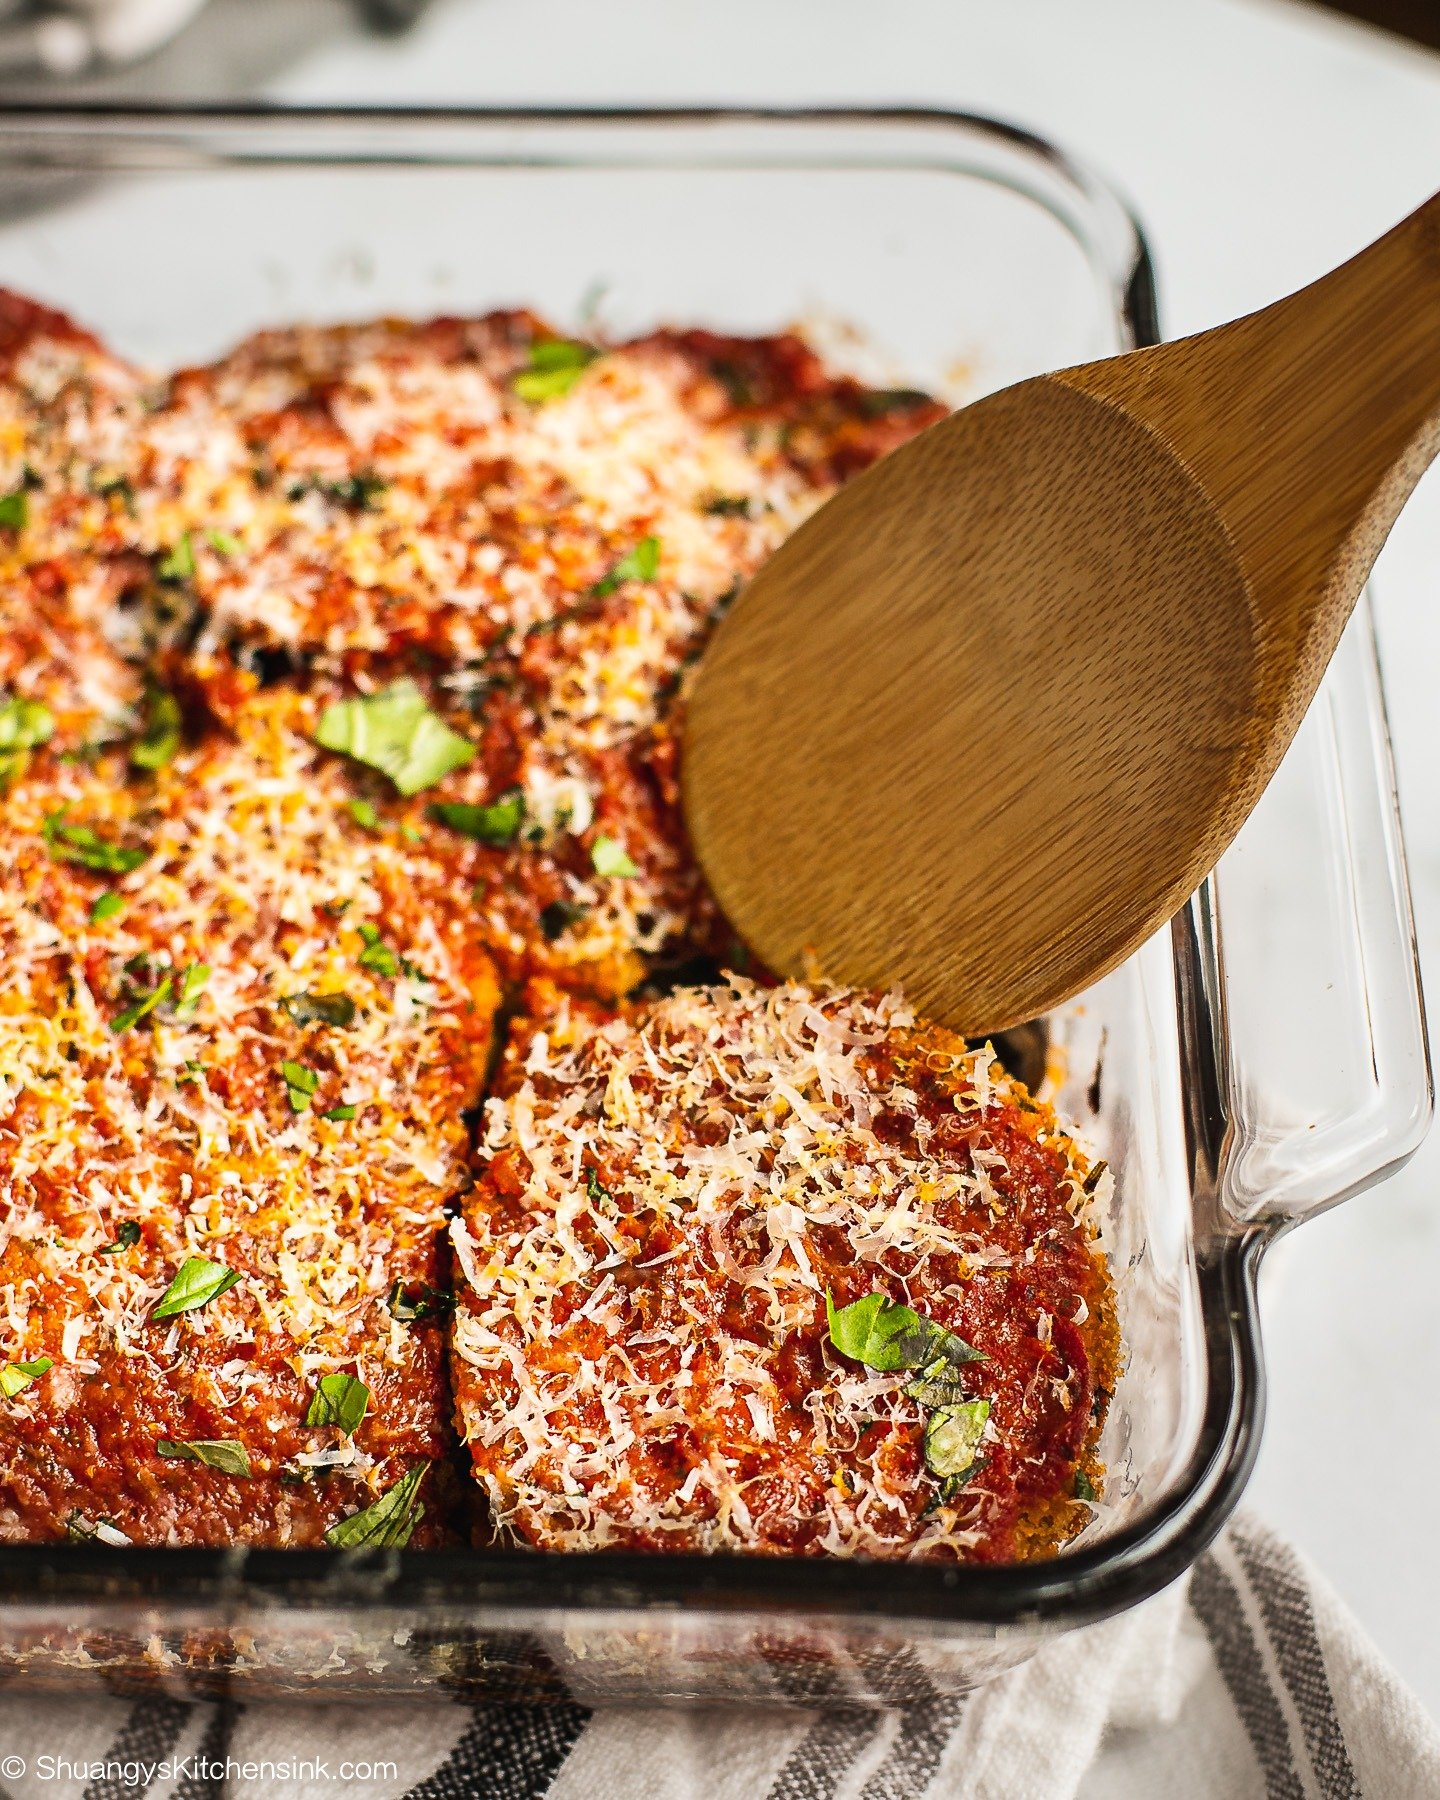 Freshly Bake Eggplant Parmesan just came out of the oven. There is a spoon holding up one piece.